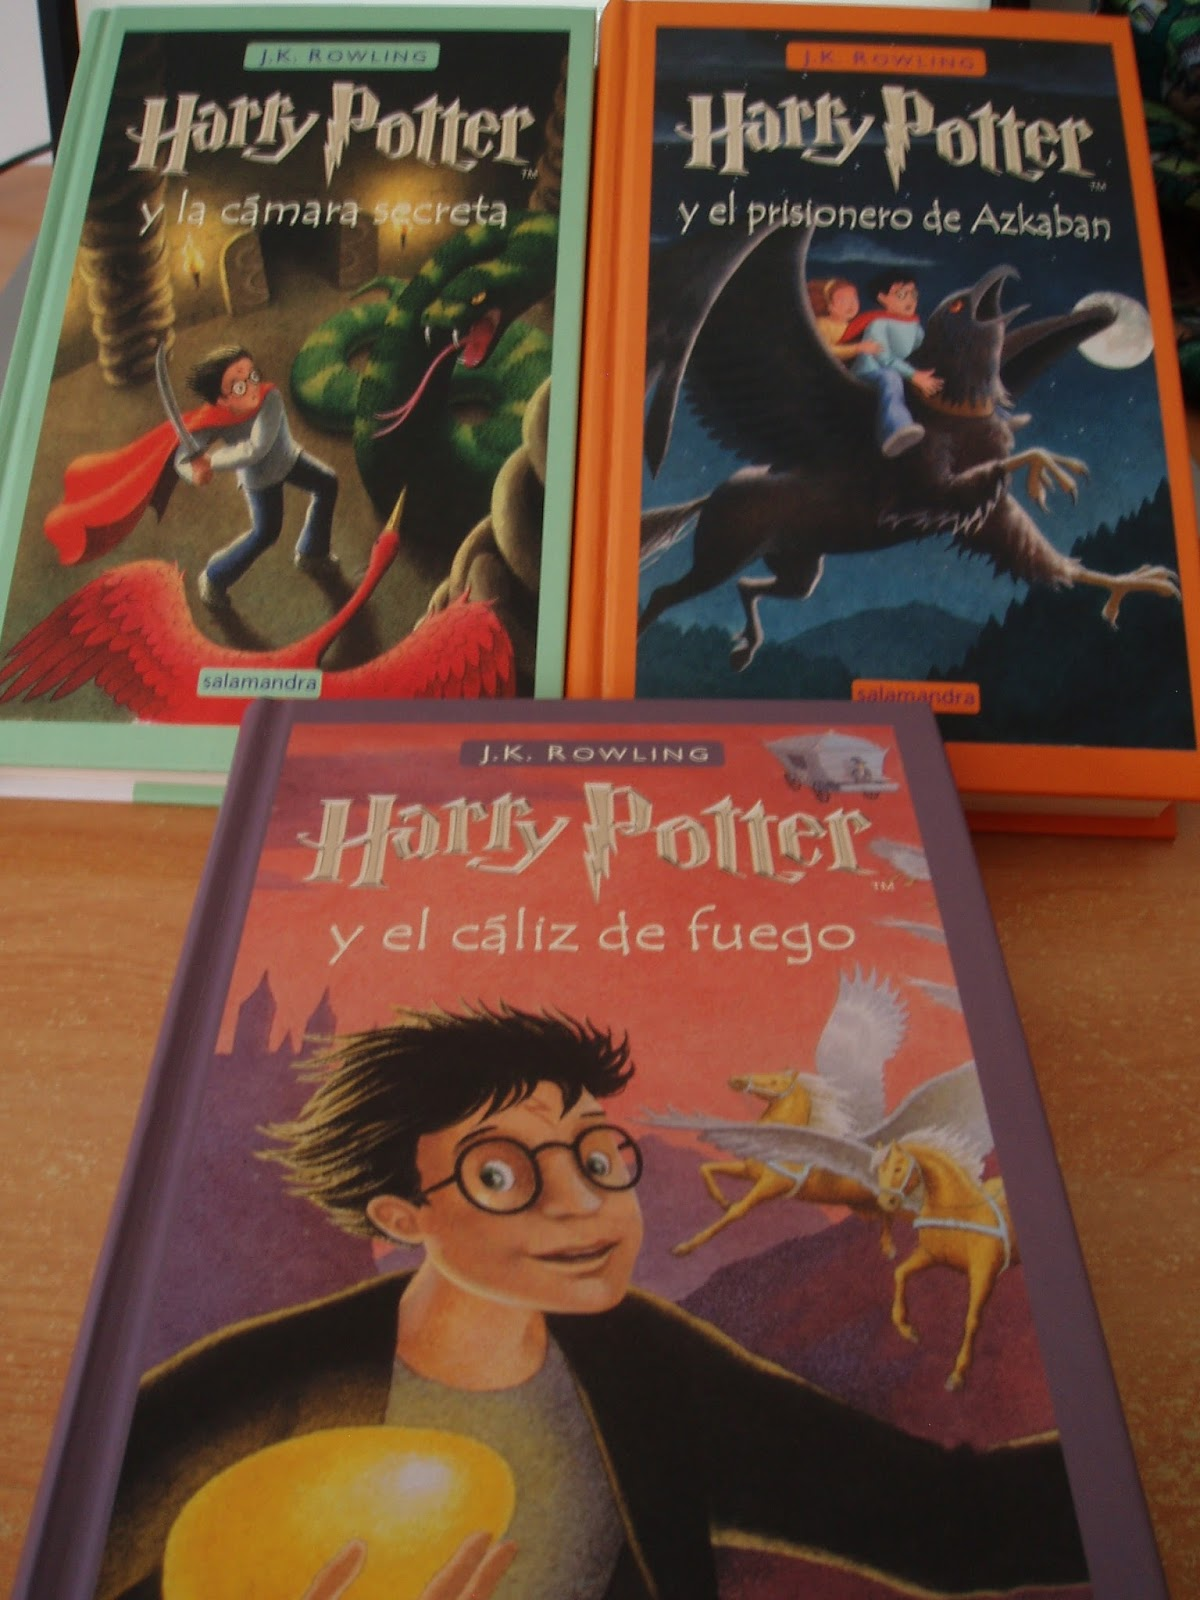 Paginas De Los Libros De Harry Potter Engrasando Las Tuercas 3 X 3 Libros De Harry Potter What